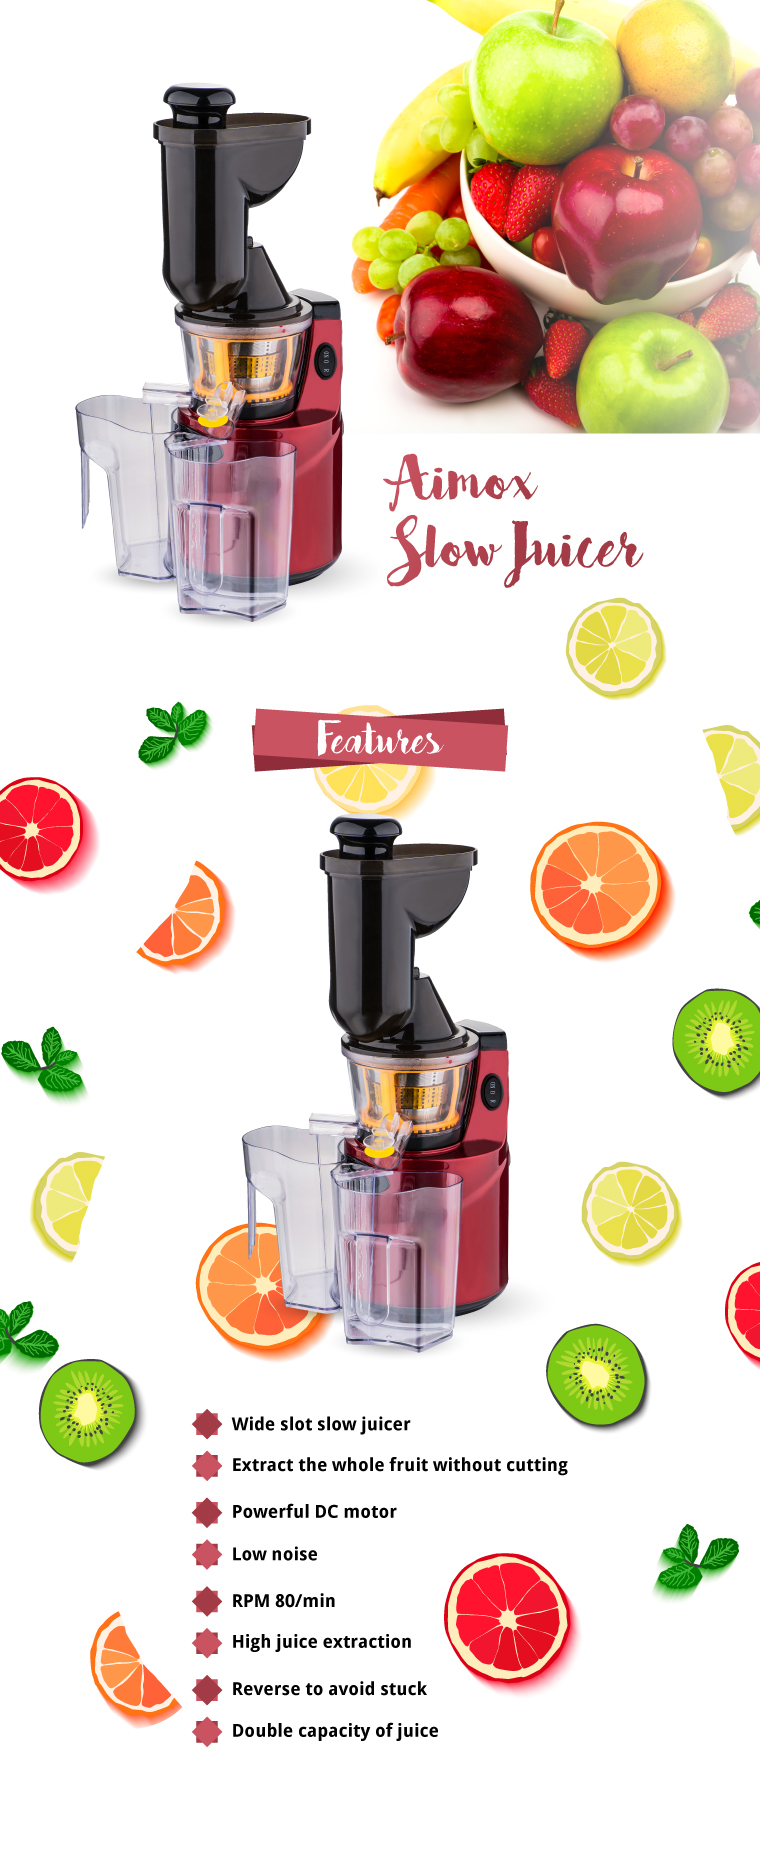 Aimox Slow Juicer Review : Aimox Slow Juicer (AI-138) Go Shop